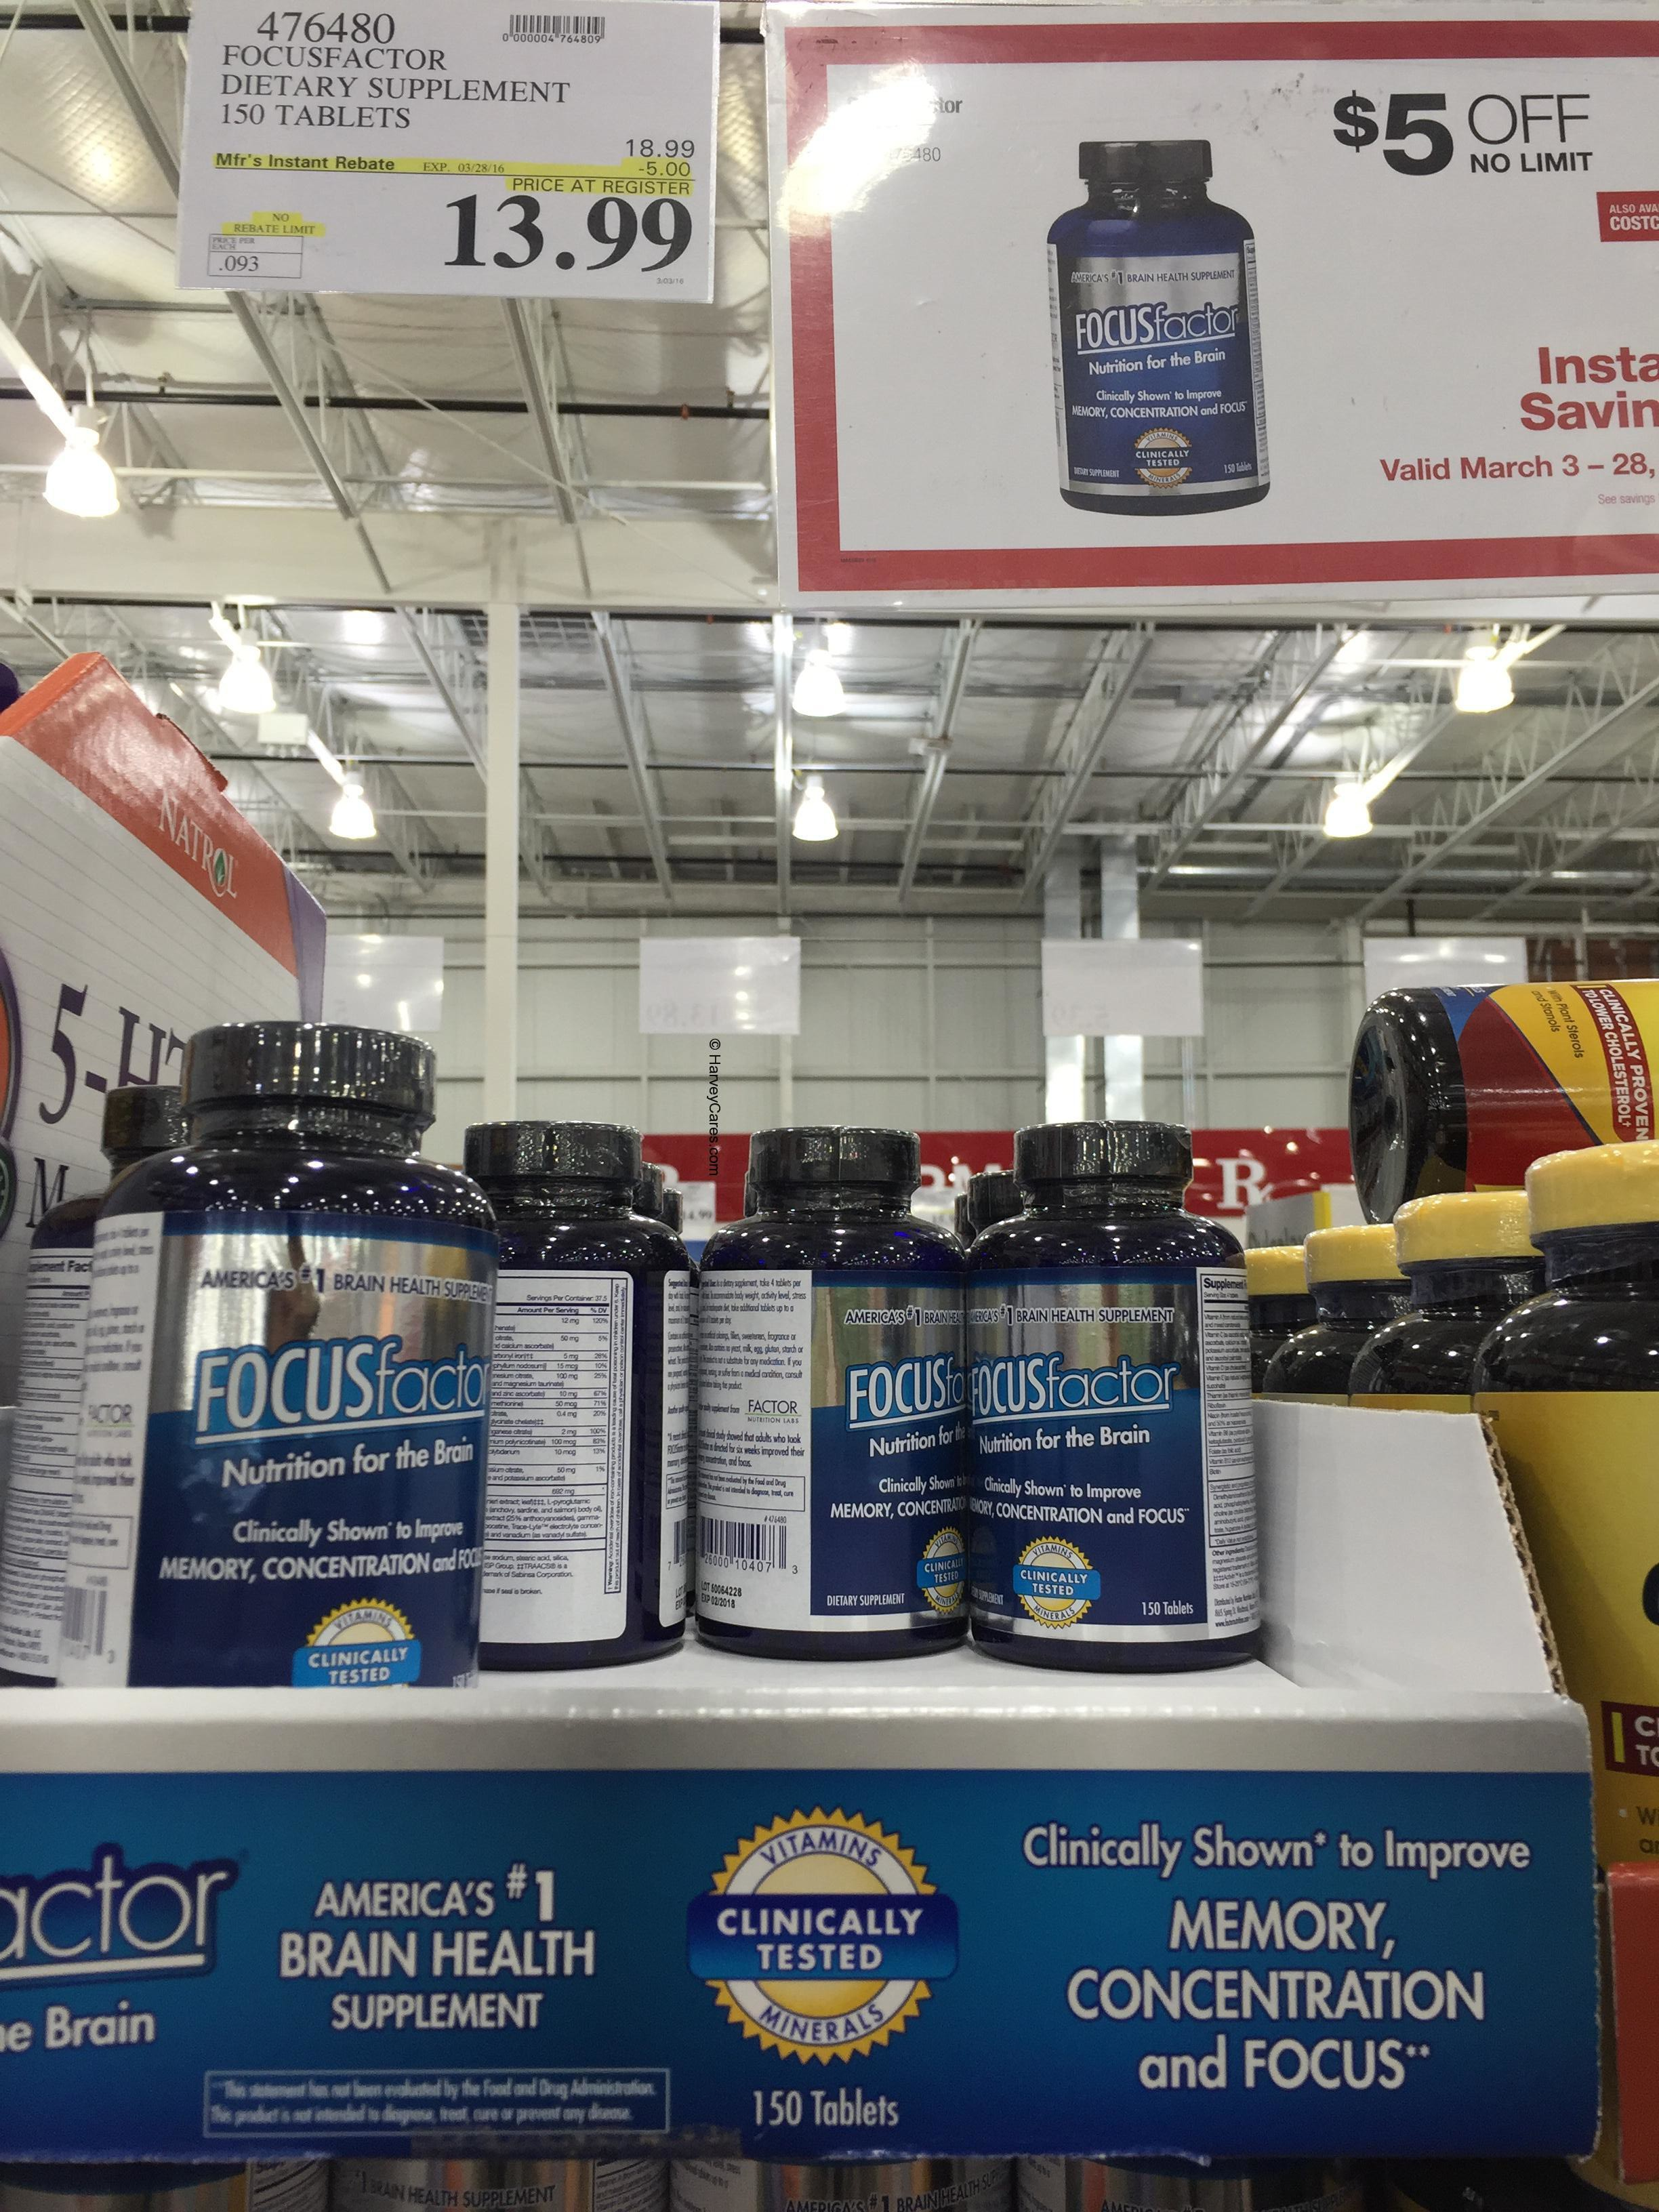 Focus Factor Nutrition Supplement For The Brain Costco